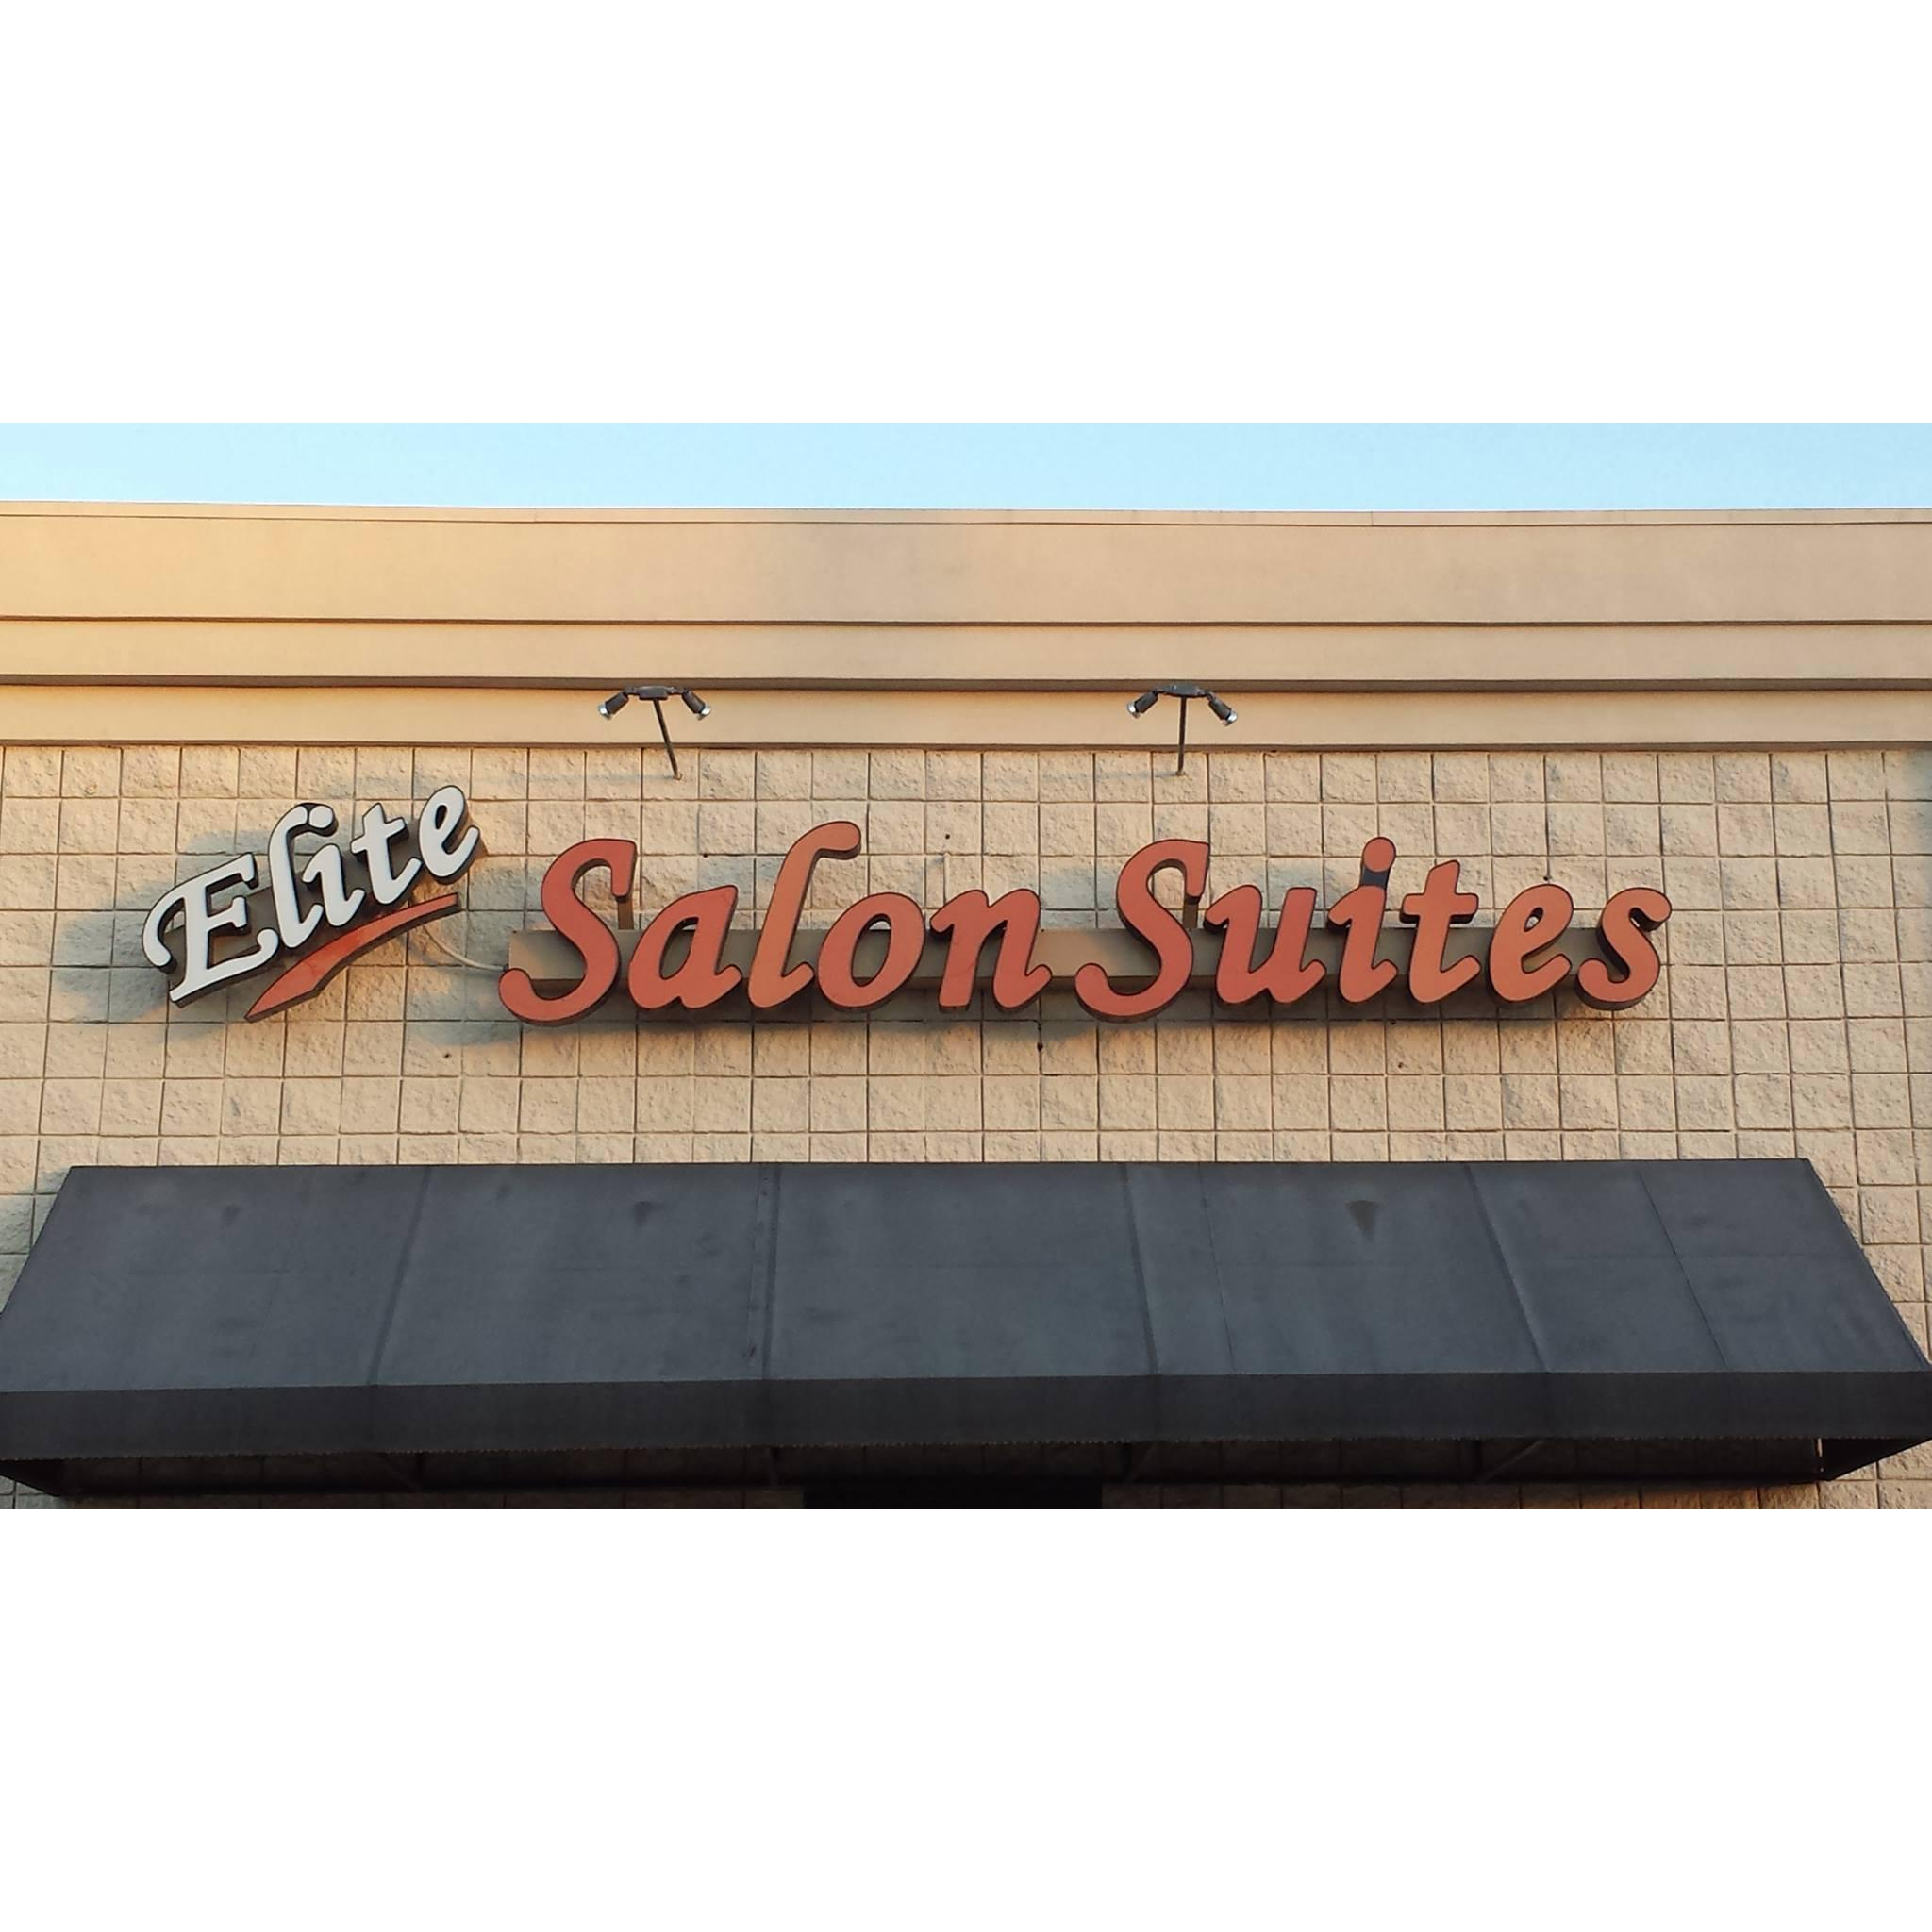 Elite salon suites 6 photos hair care fayetteville for A shane buffkin salon